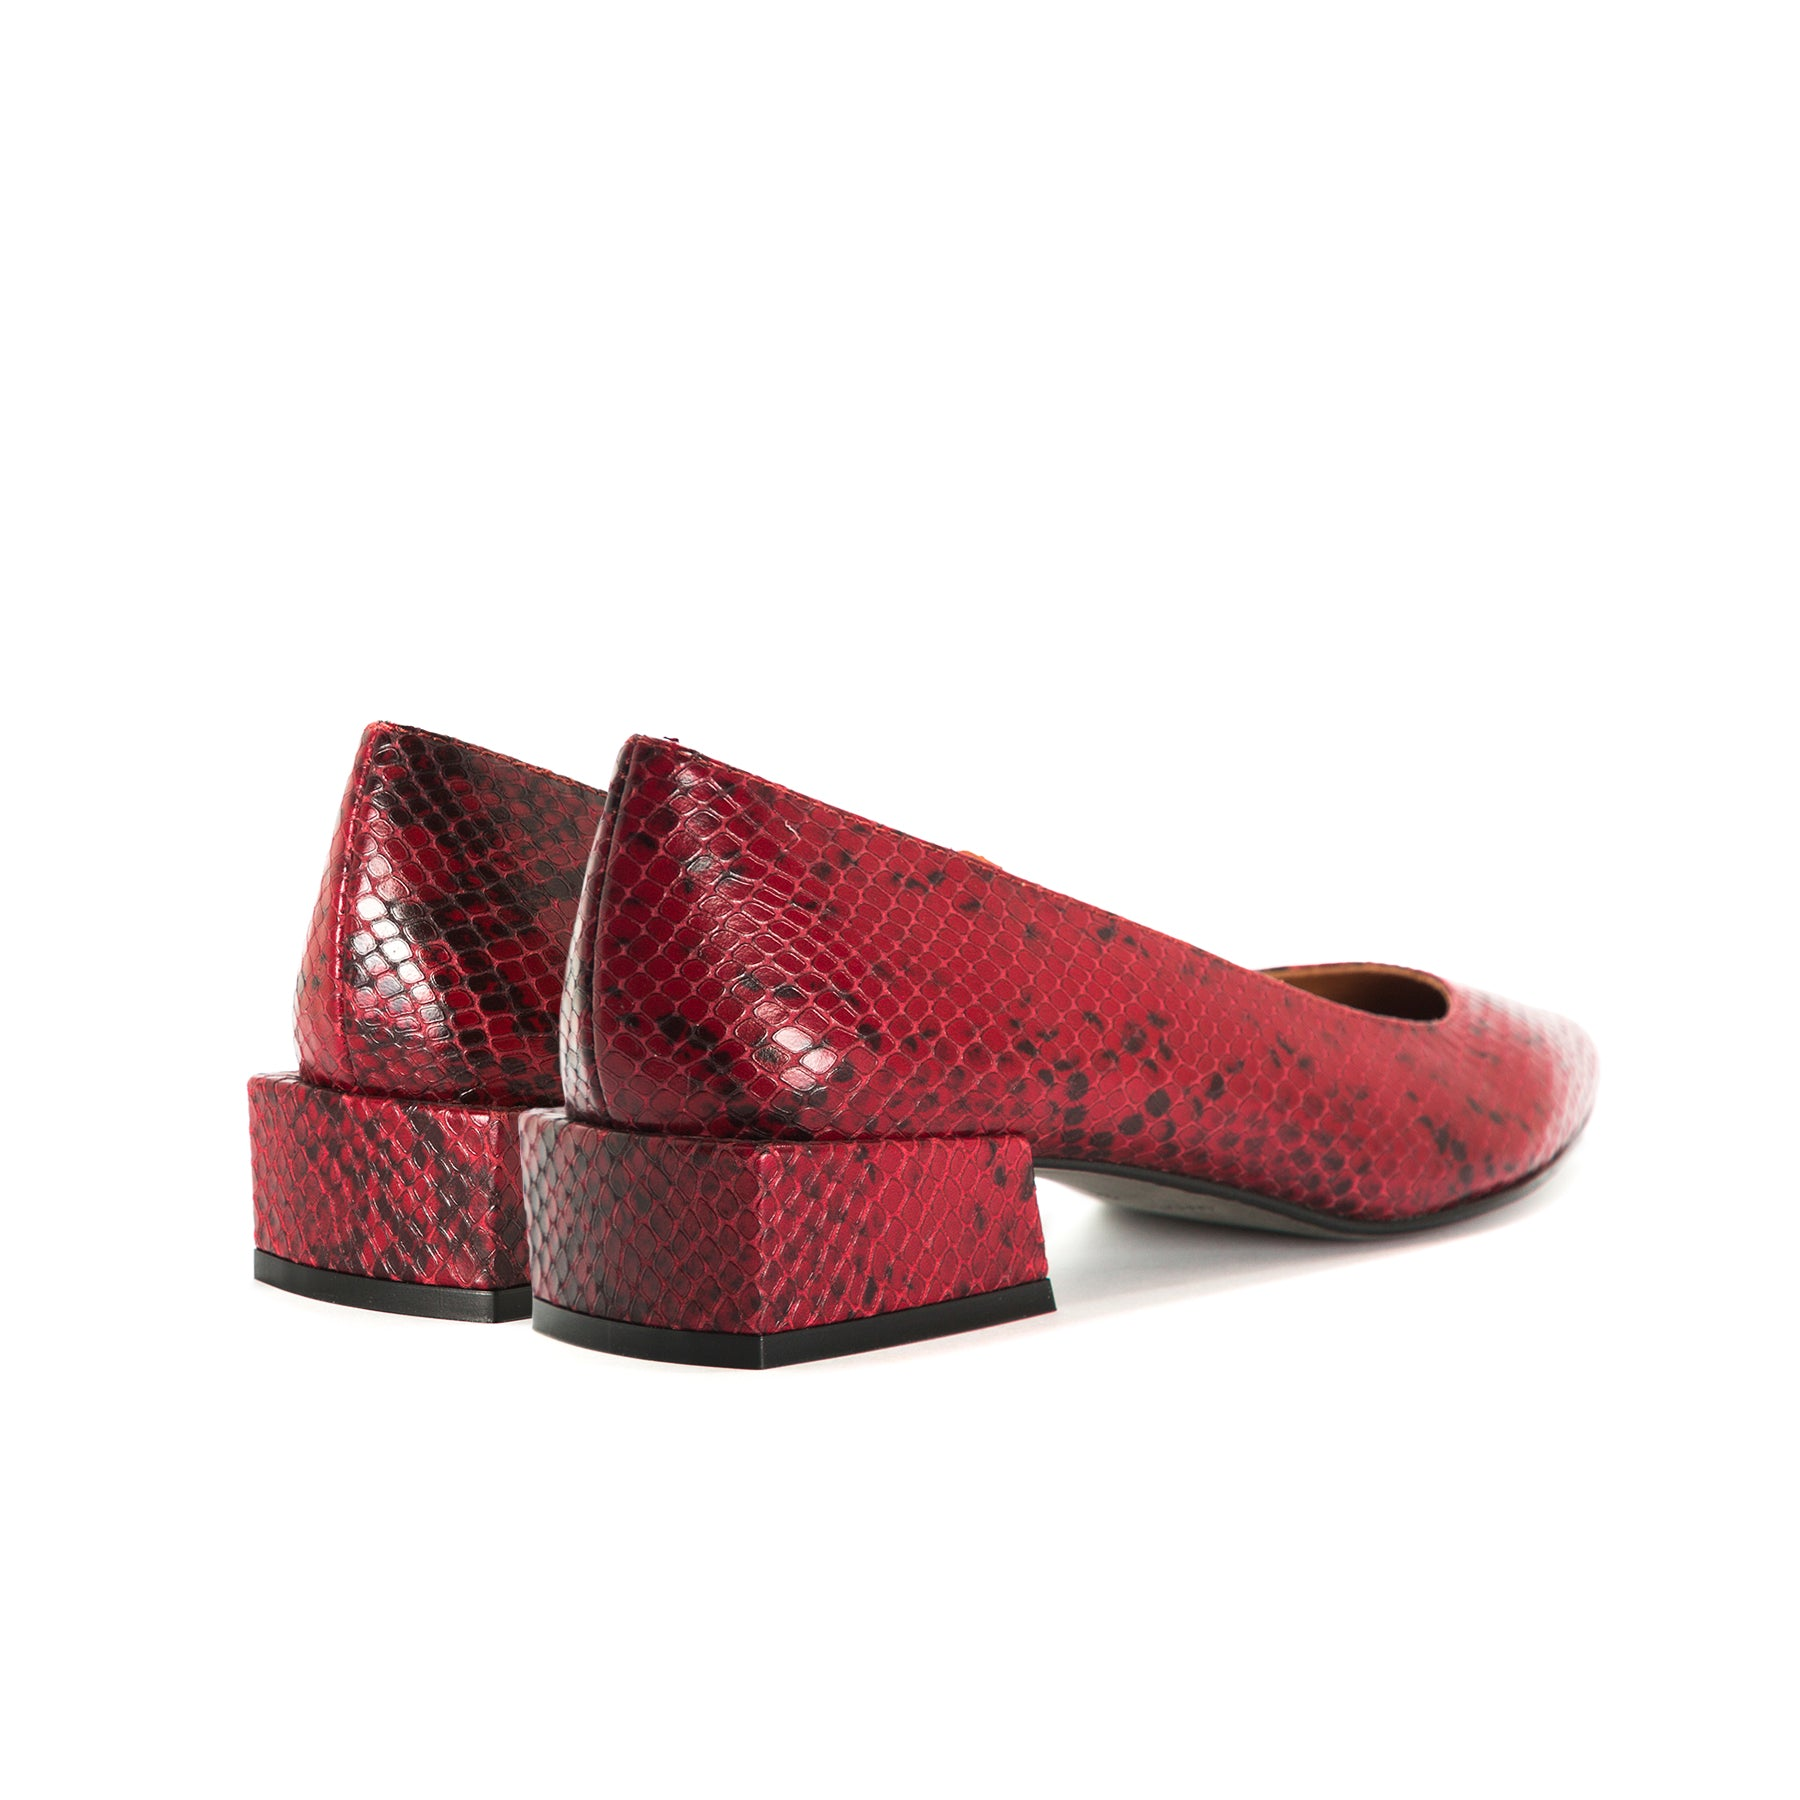 Ingrid Bordo Snake Shoes